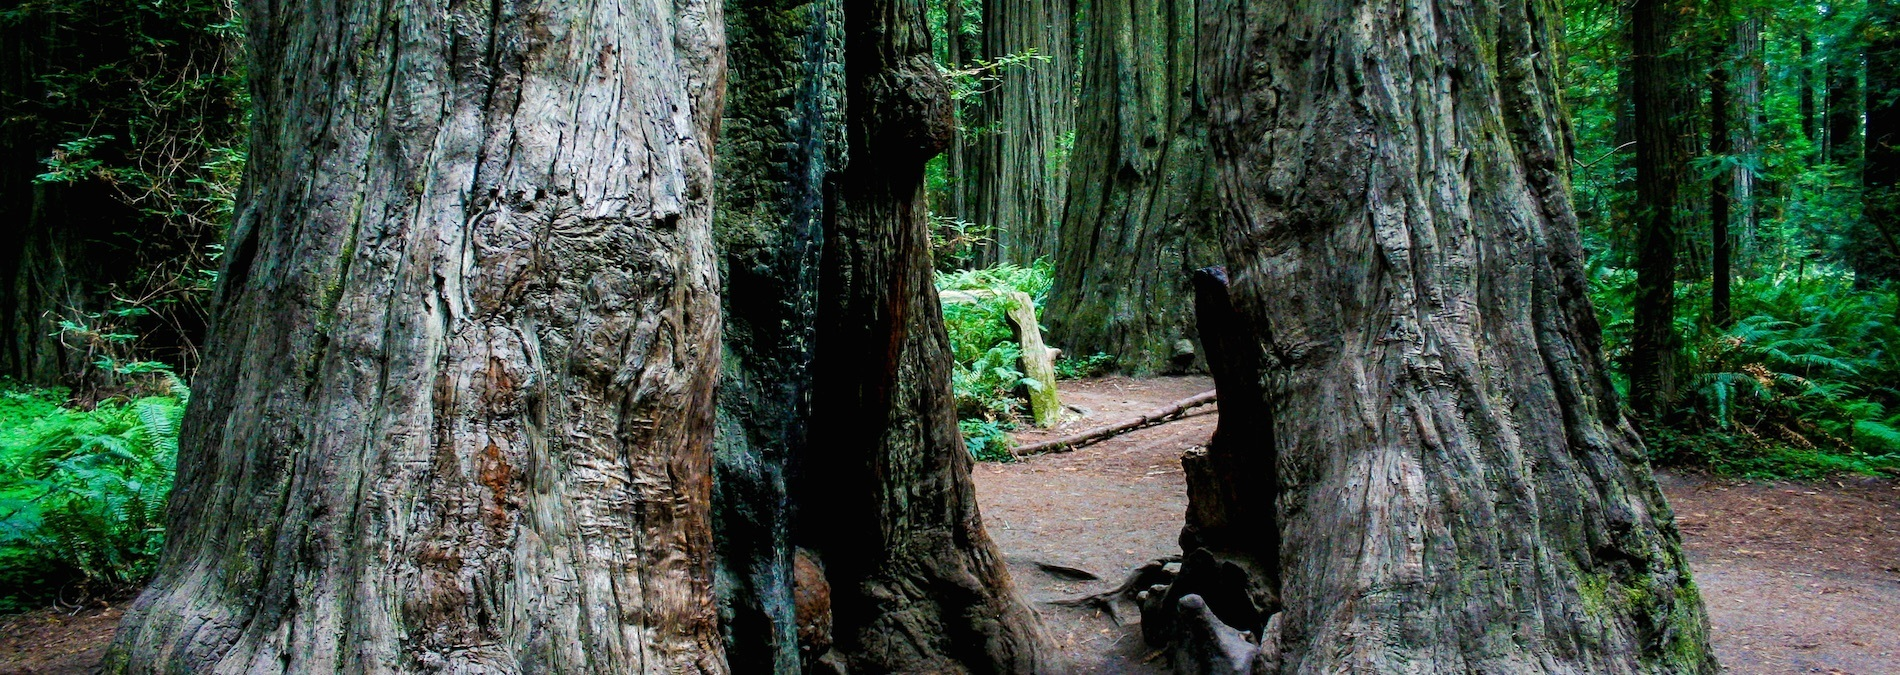 #Dadtography Travel Series – Redwood National Park Review, Northern California